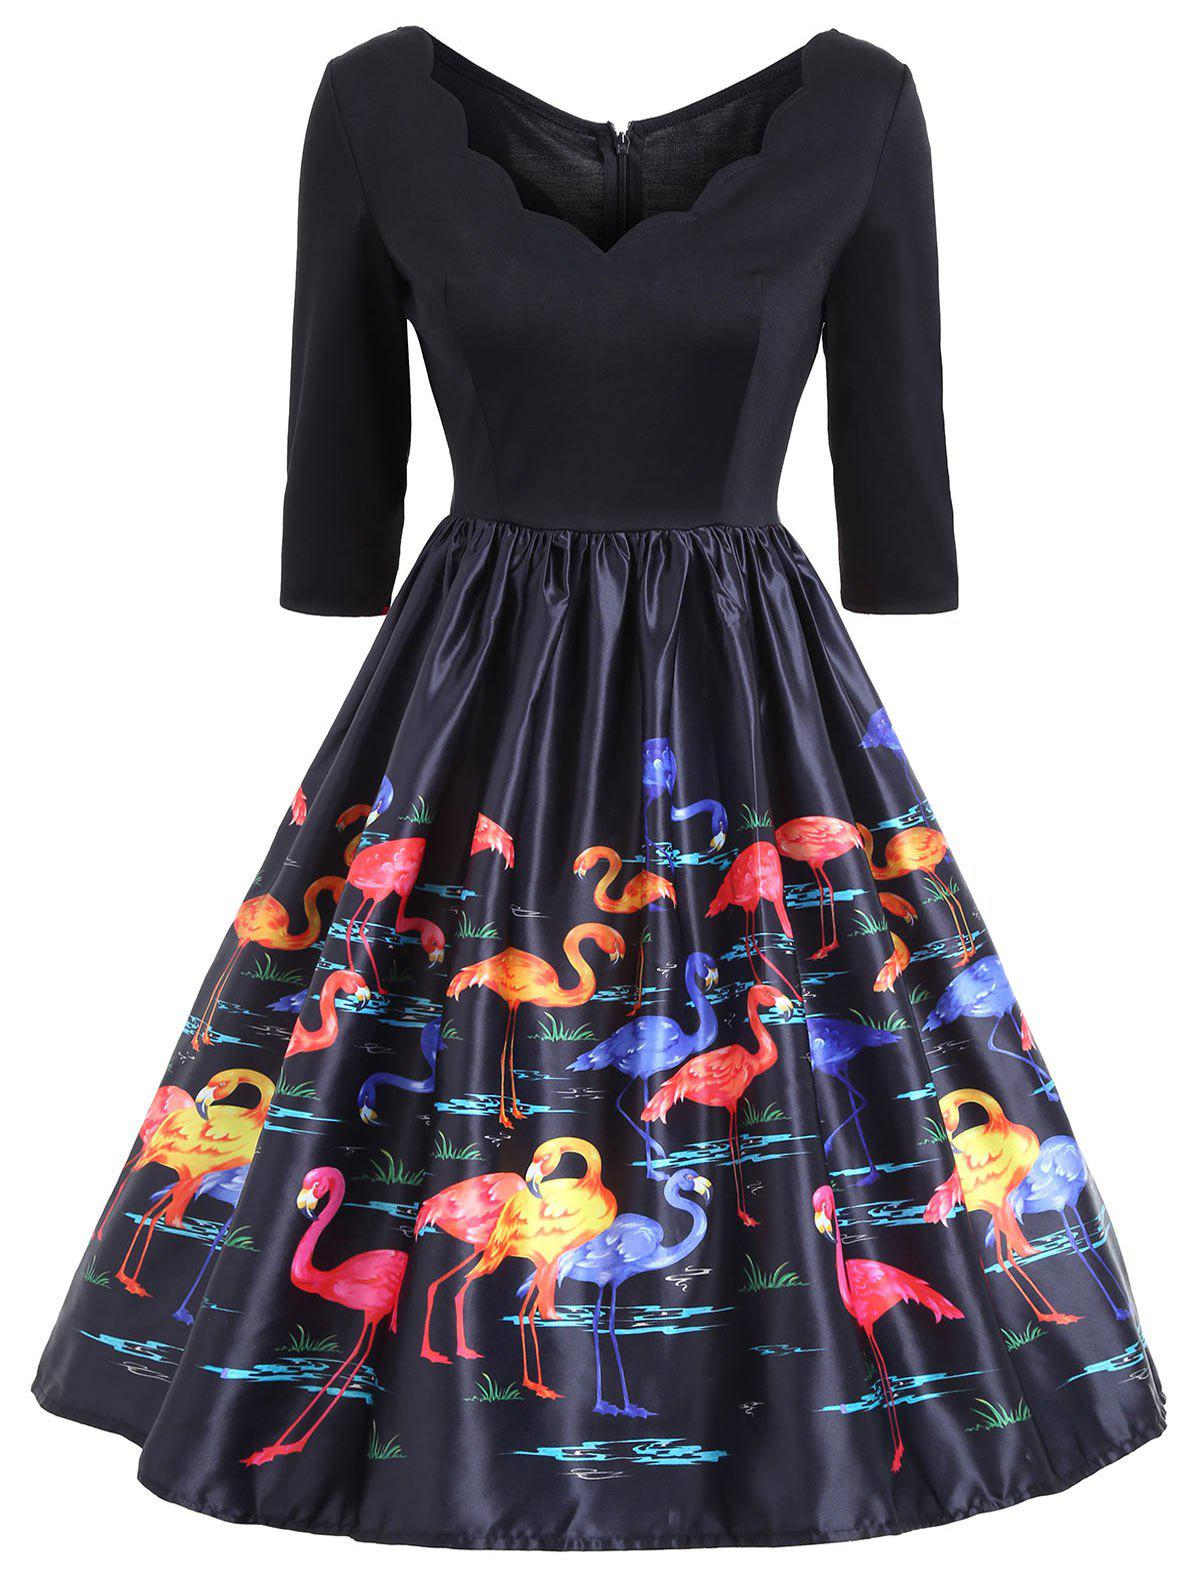 Flamingo Print V-Neck Fit et Flare Vintage Dress - multicolorcolore L